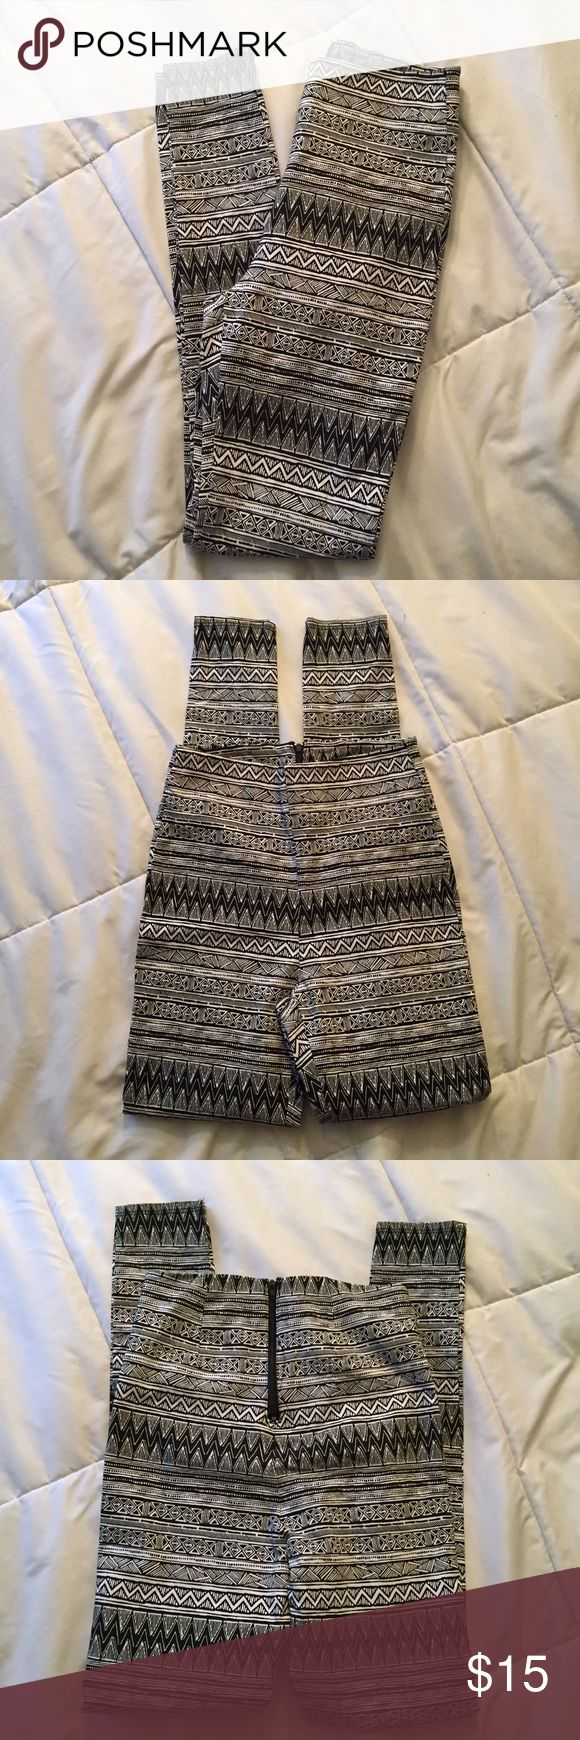 NWOT LA Hearts aztec print high waisted pants Super cute high waisted aztec print pants with zipper up back. Perfect with a crop top or lace bralette for summer! Only tried on and removed tags but never worn. Absolutely love these, they're just a little too small. LA Hearts Pants Skinny